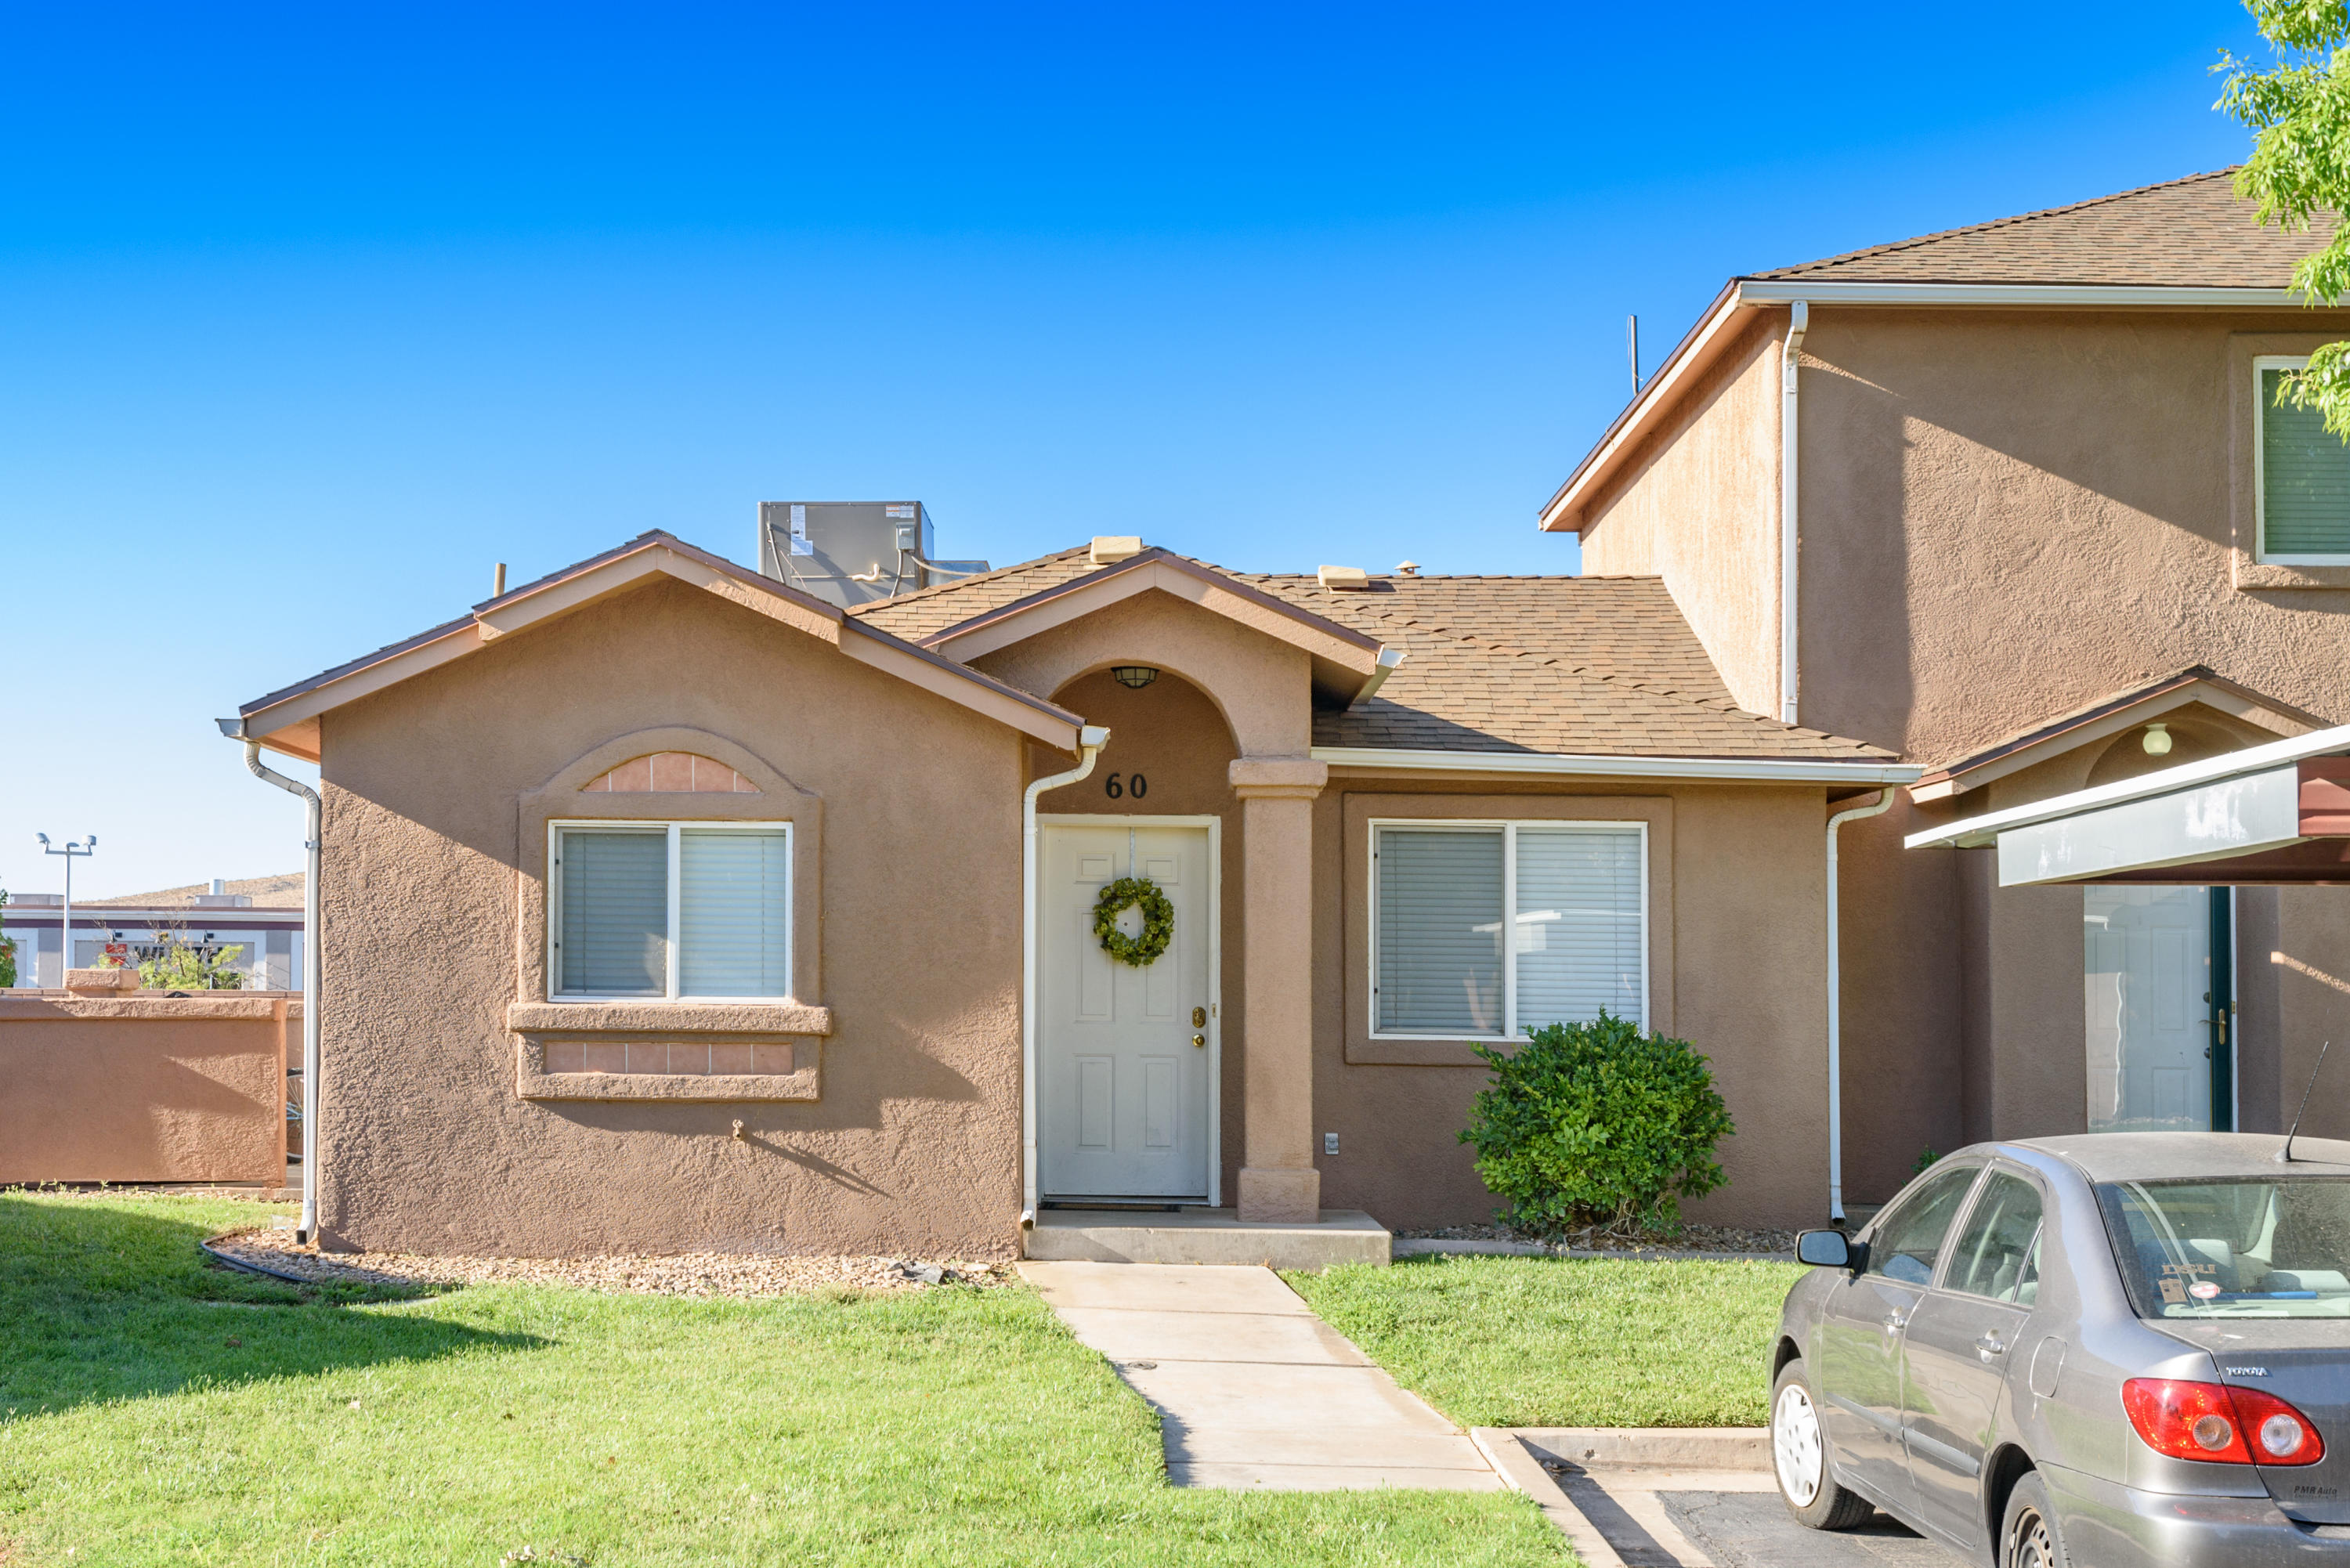 444 E Sunland Unit 60, St George Ut 84790